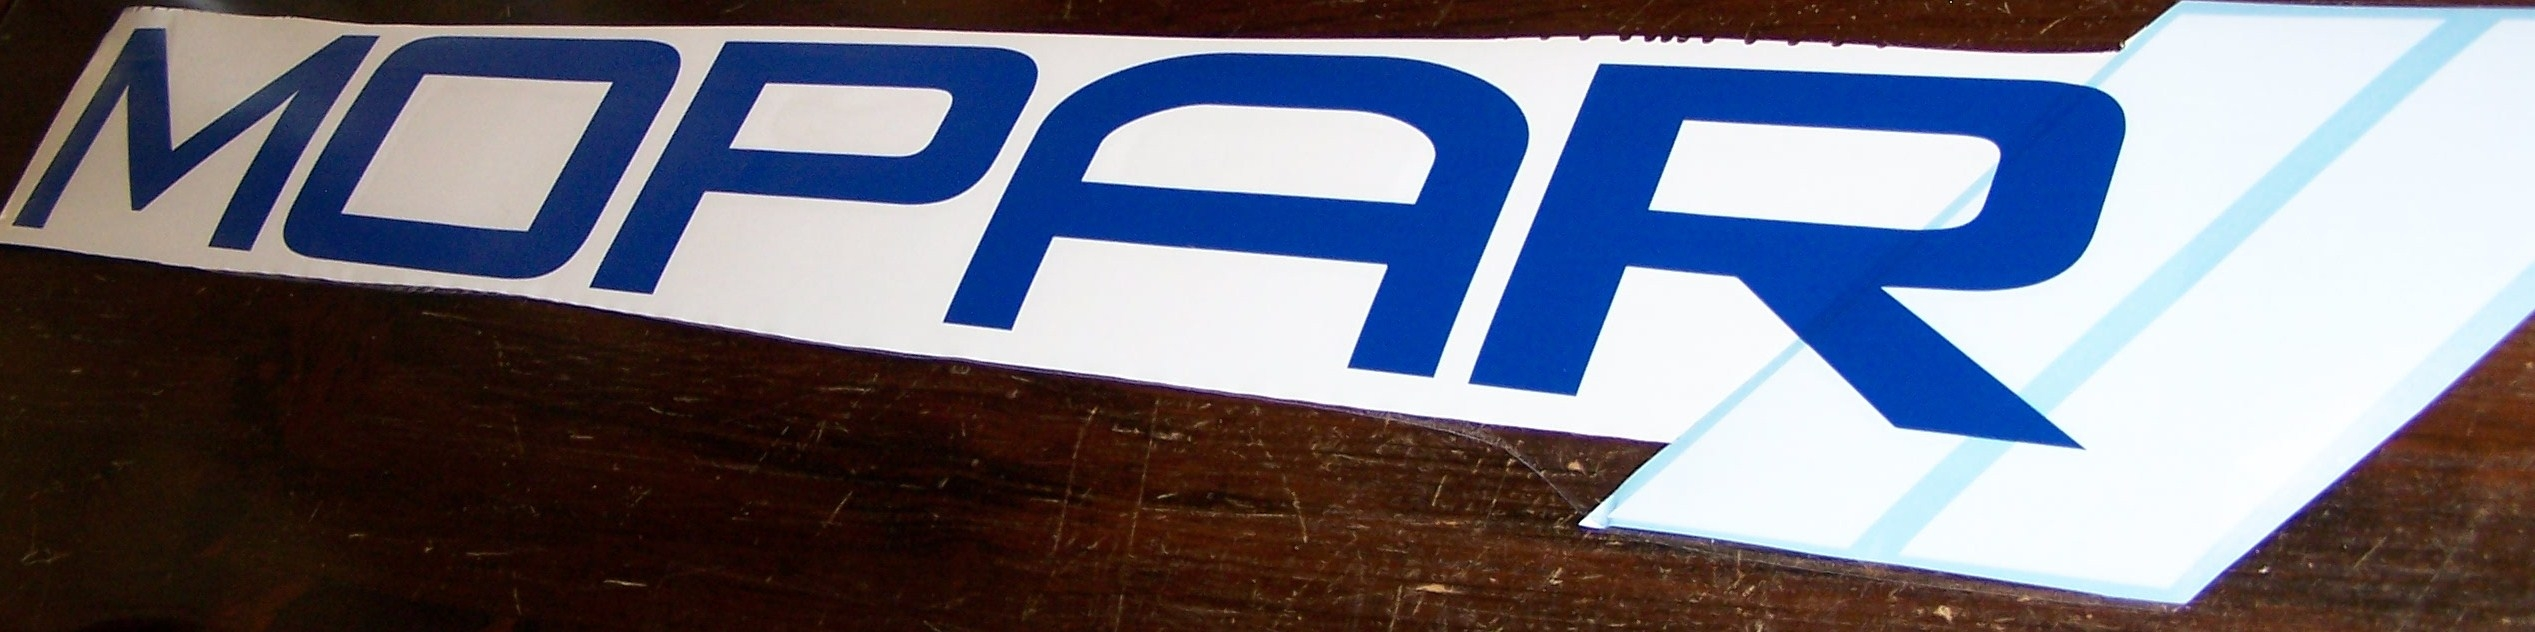 MOPAR WINDSHIELD DECAL STICKER BANNER CHOOSE SIZE AND 2 COLORS